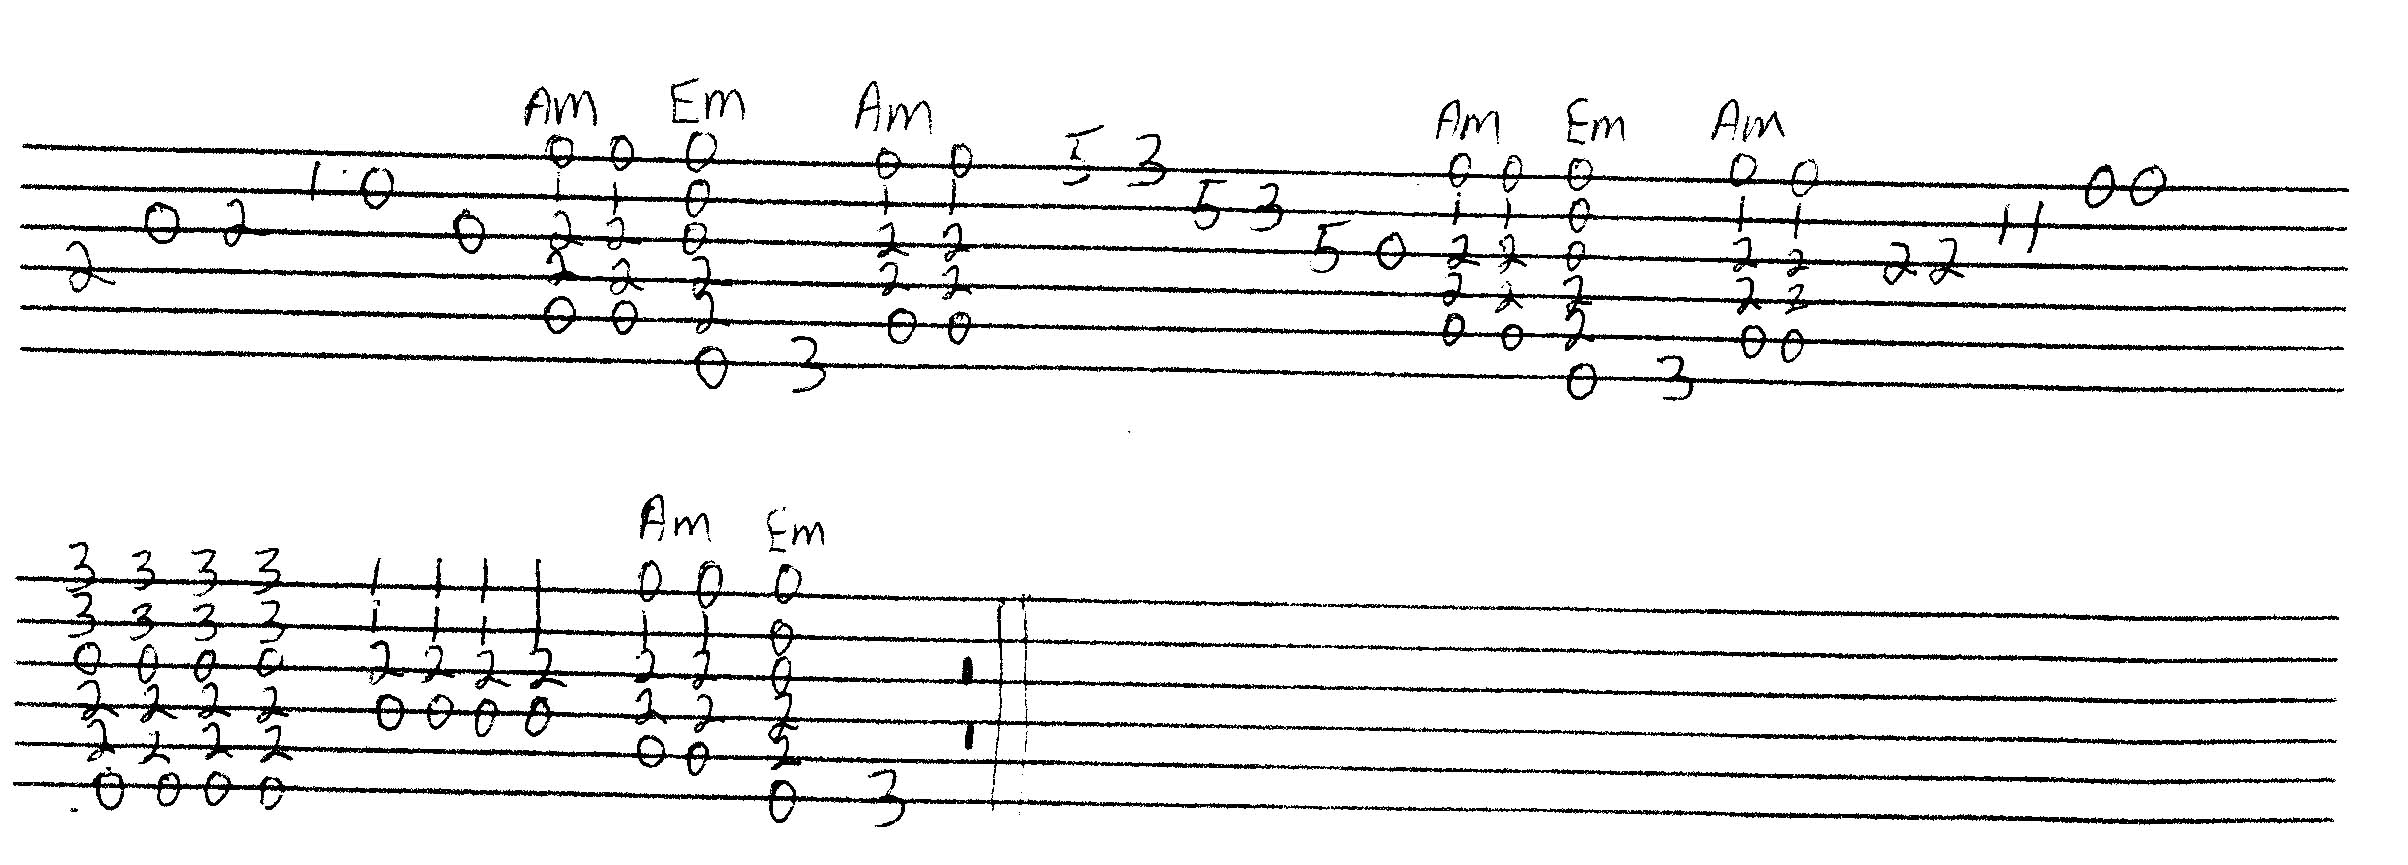 Ain T No Sunshine Chords Untitled Document